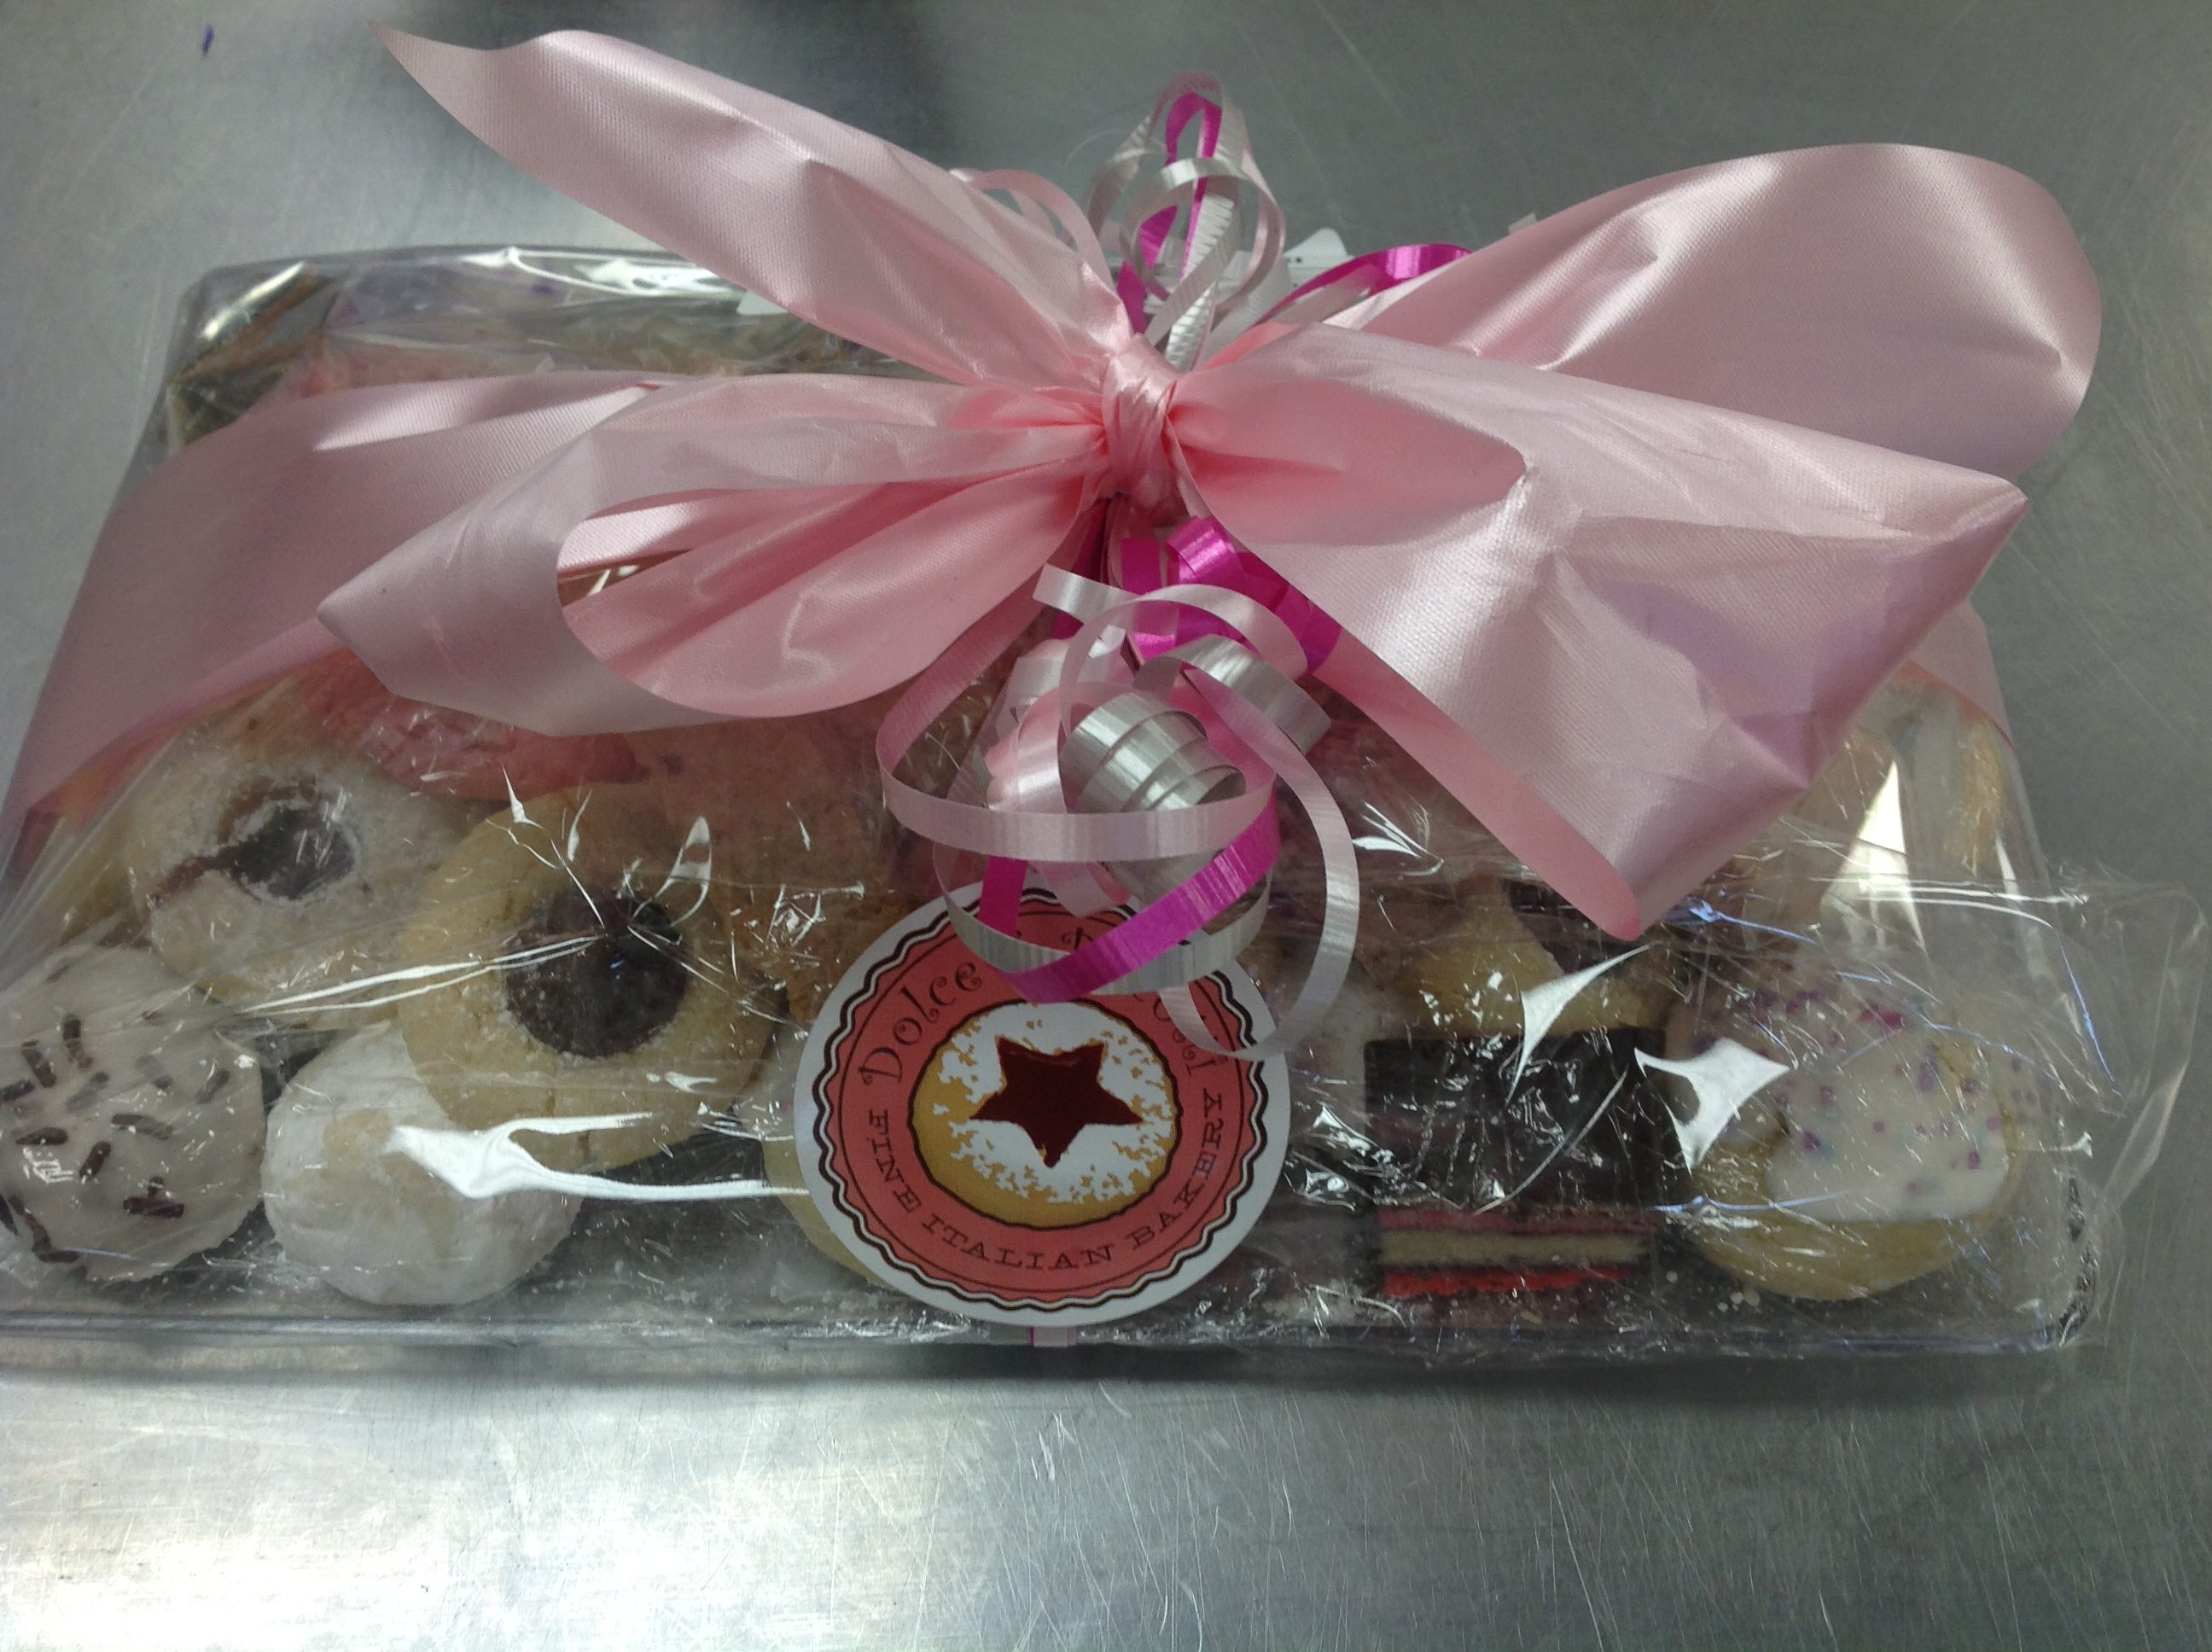 Assorted cookie platters at Dolce and Biscotti Italian Bakery